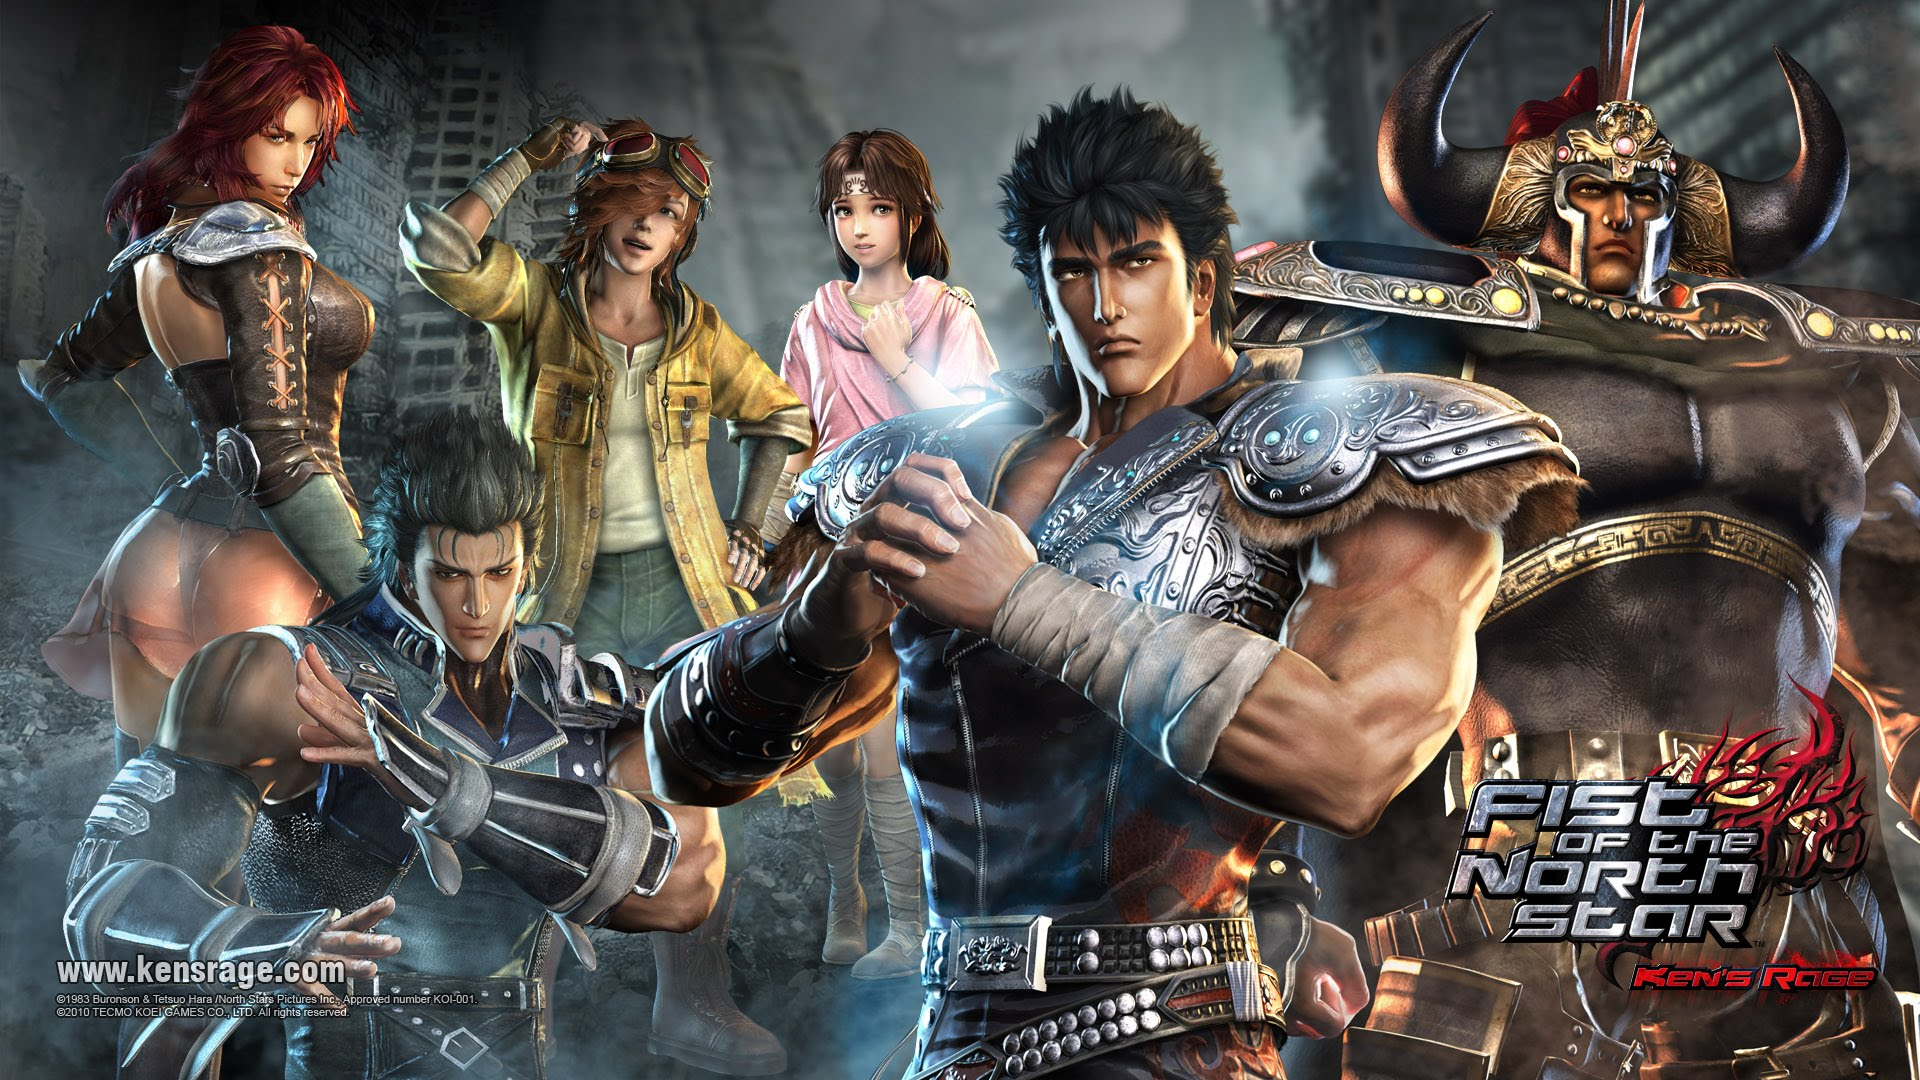 Free Download Fist Of The North Star Announced Mxdwn Games